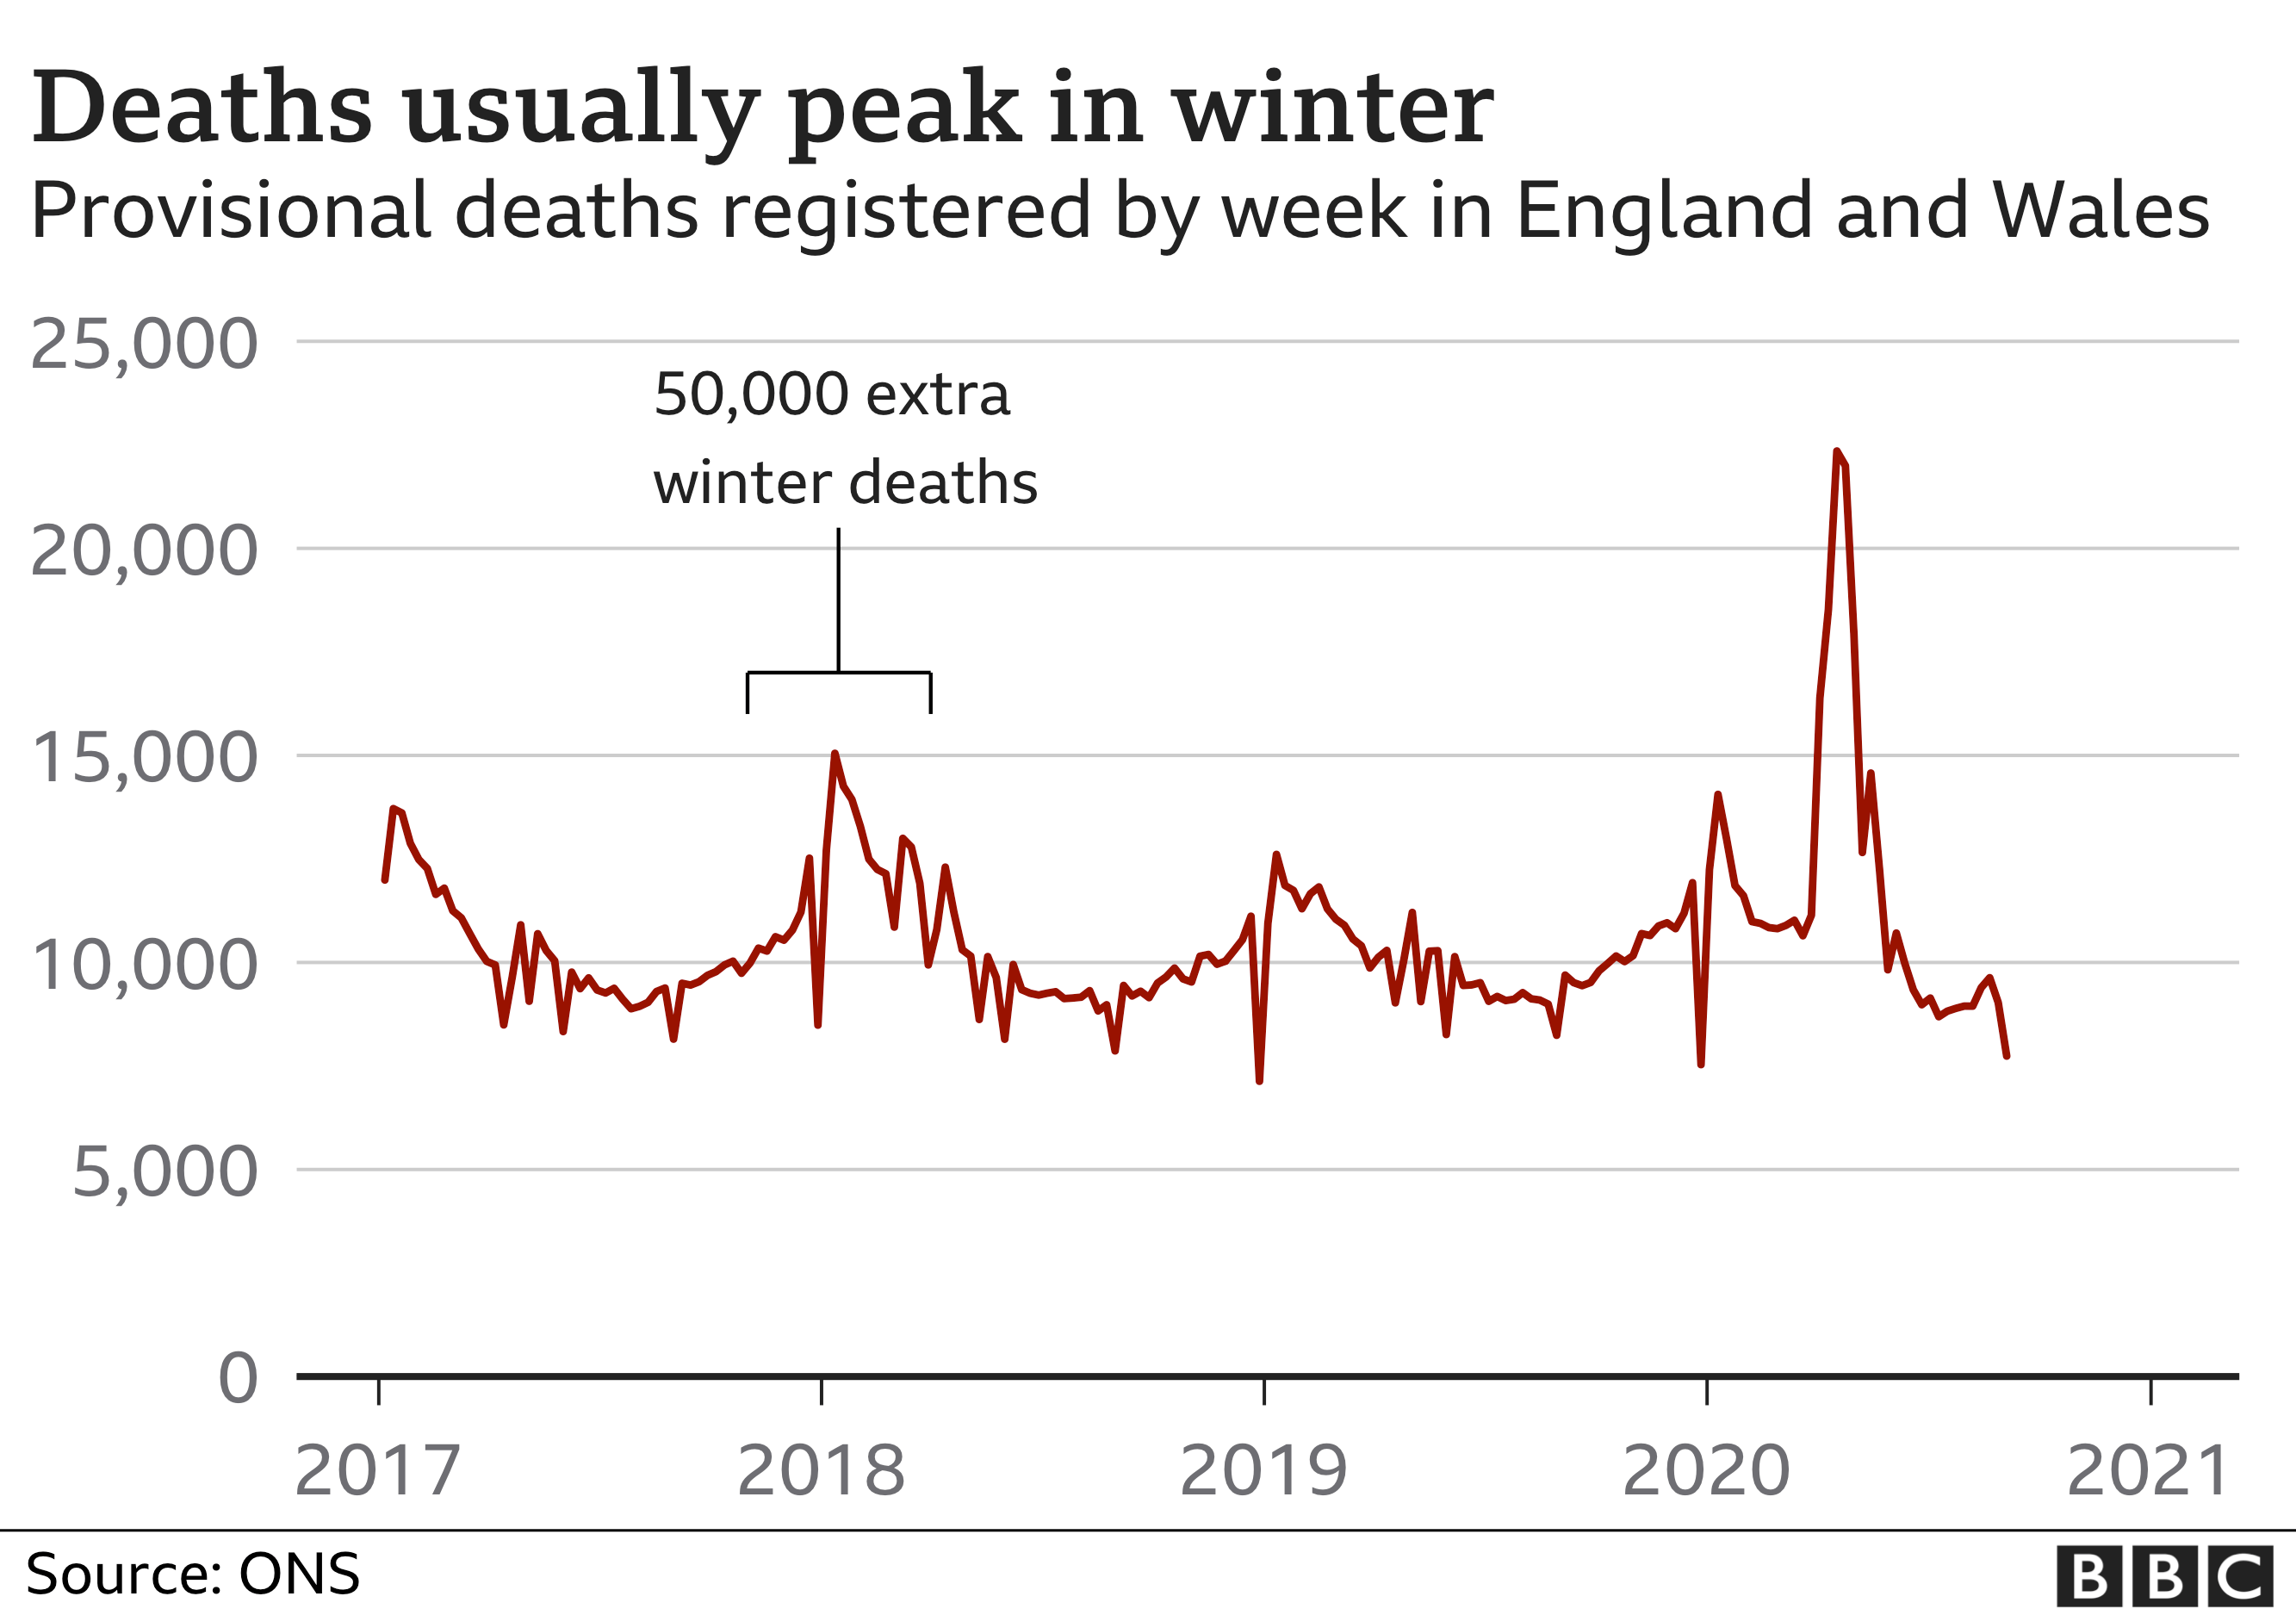 Chart showing winter deaths